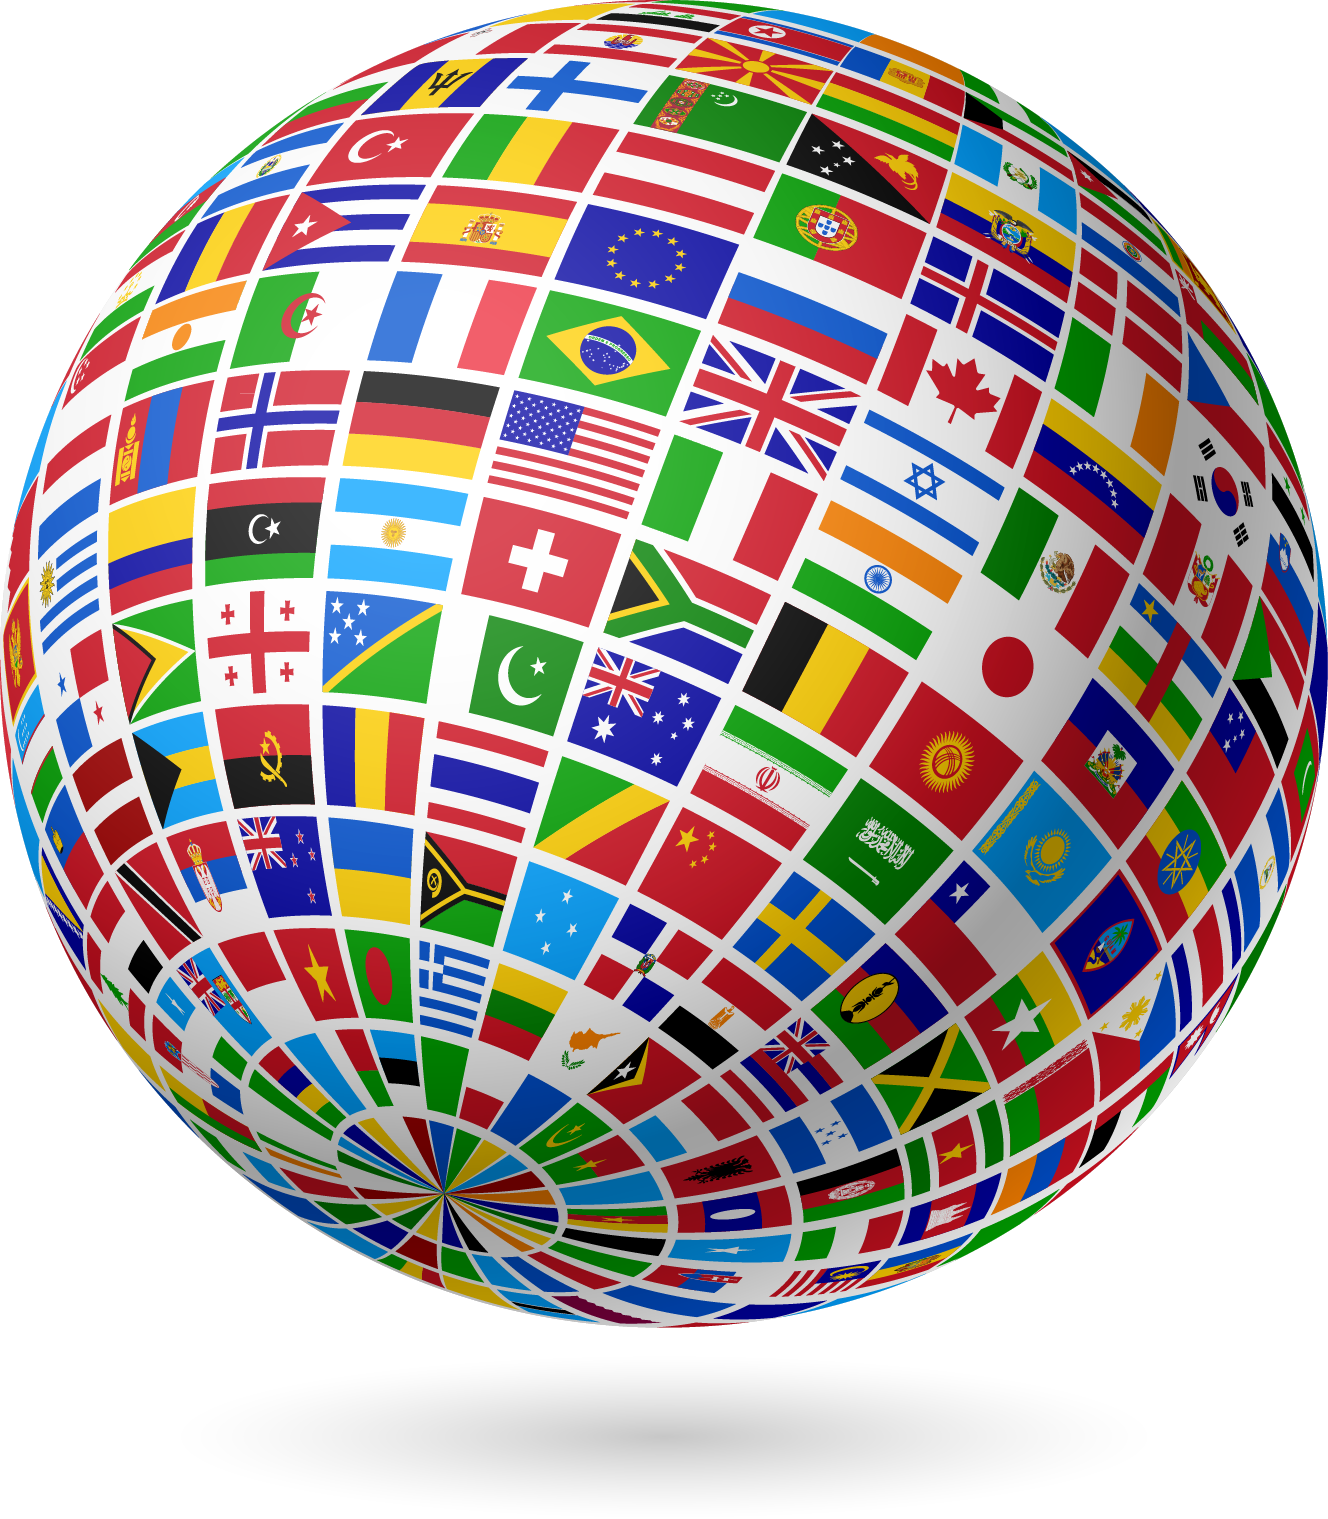 Flag globe png. Flags of the world